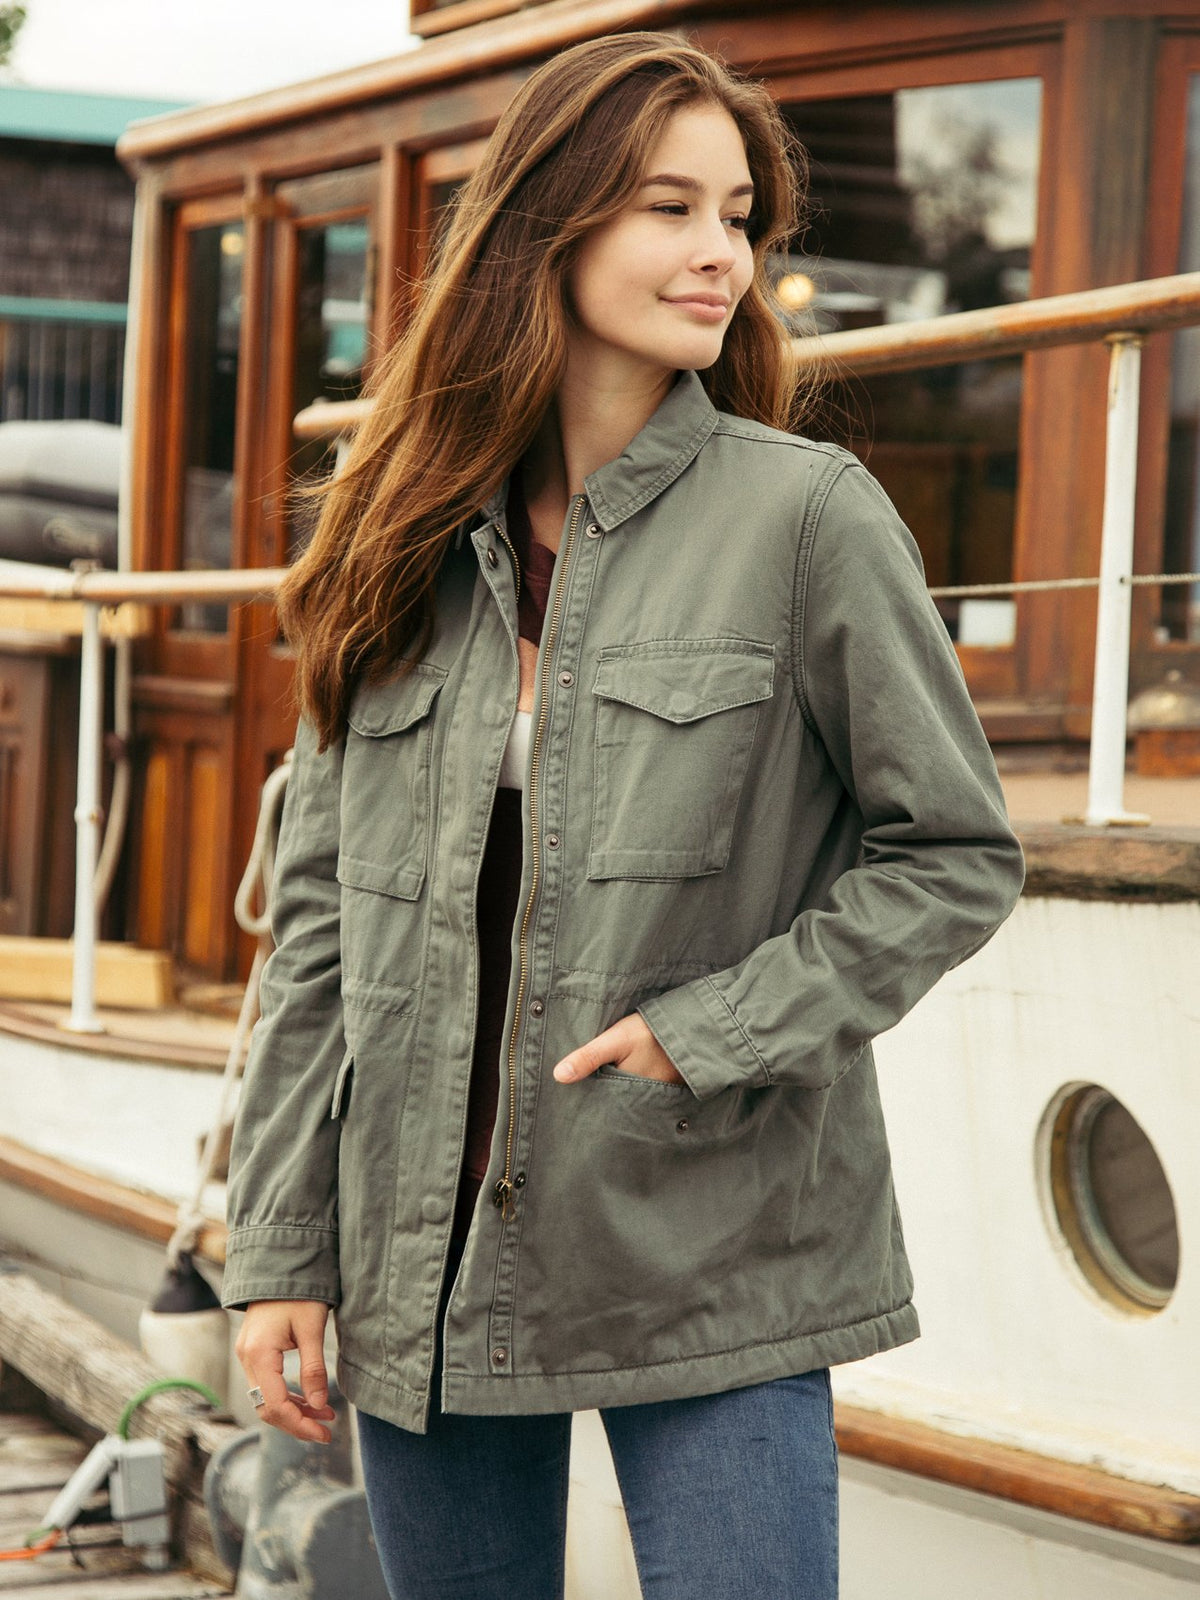 Drifting Slowly Jacket Jacket Thread & Supply Shrub S